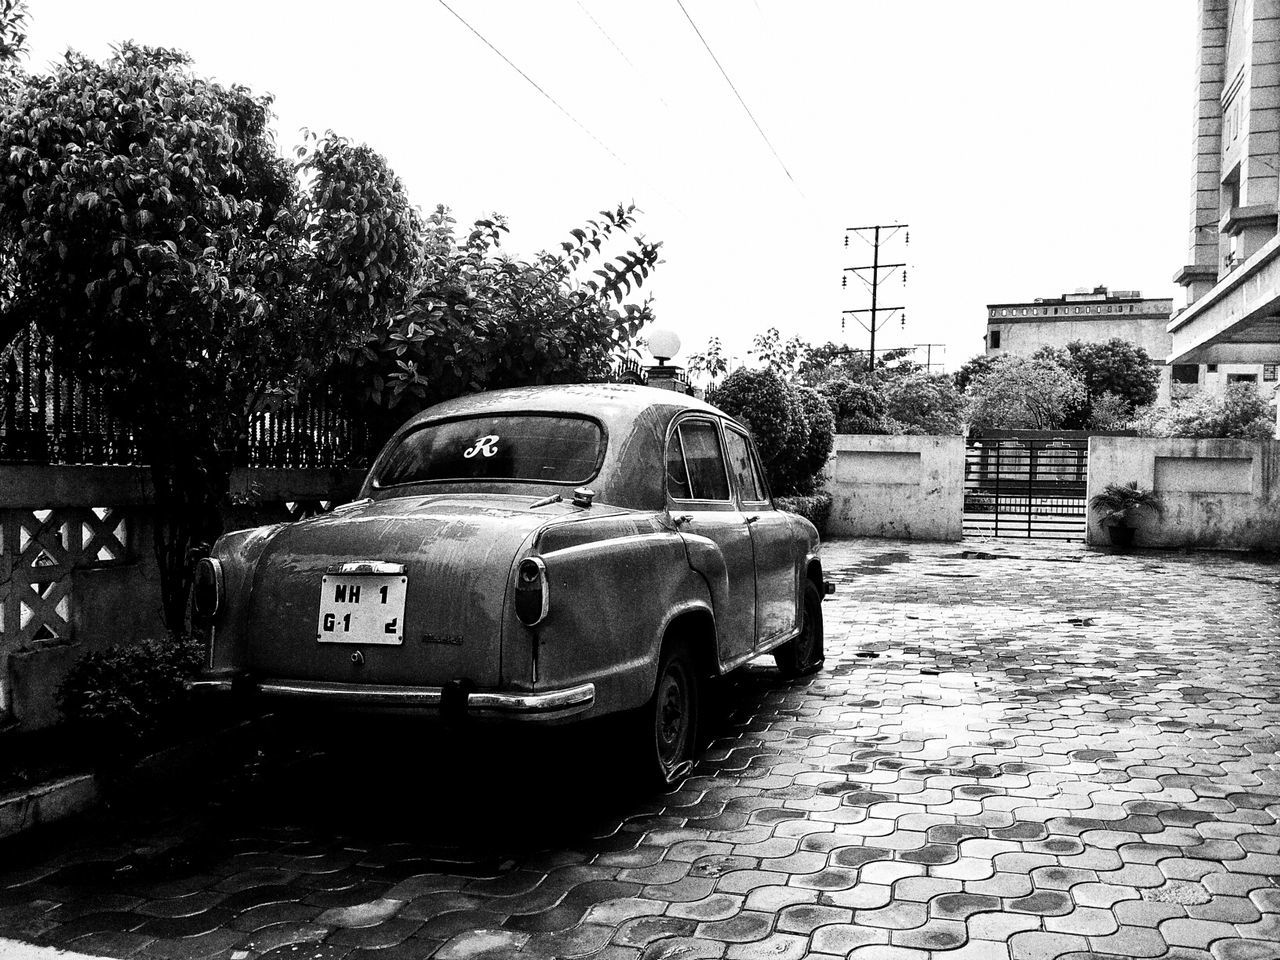 Its a vintage piece fiat product going monochromatic after a rainy day...becomes more attractive when it shines...and now it is kept aside like a vintage showpiece... Enjoying Life That's Me Check This Out Hello World When It's Raining Monochromatic Classic&Vintage Automobiles Automotive Photography Vintagecar Vintage Vehicles